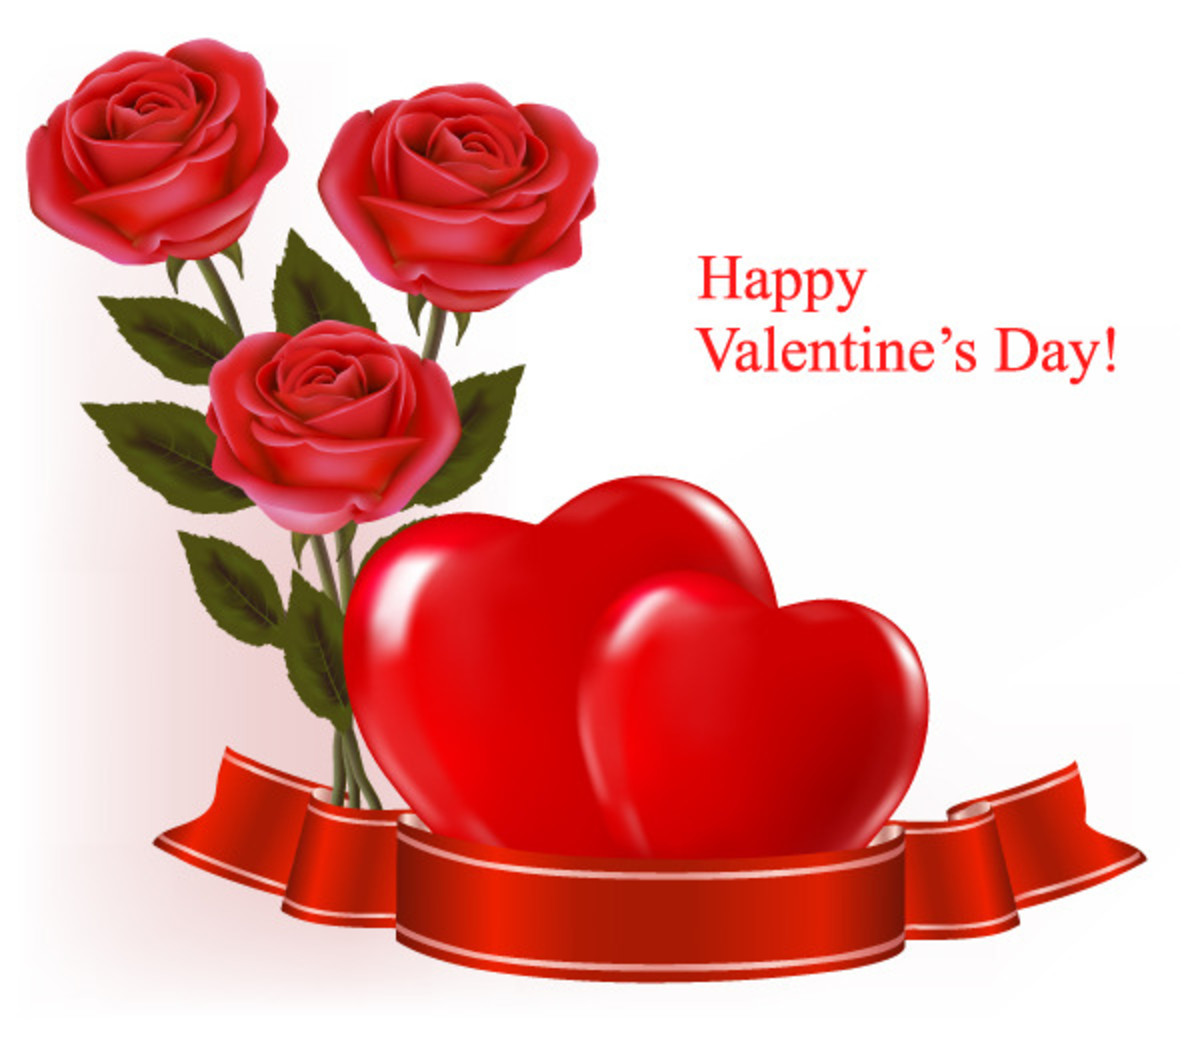 Happy Valentine's Day with Roses and Hearts